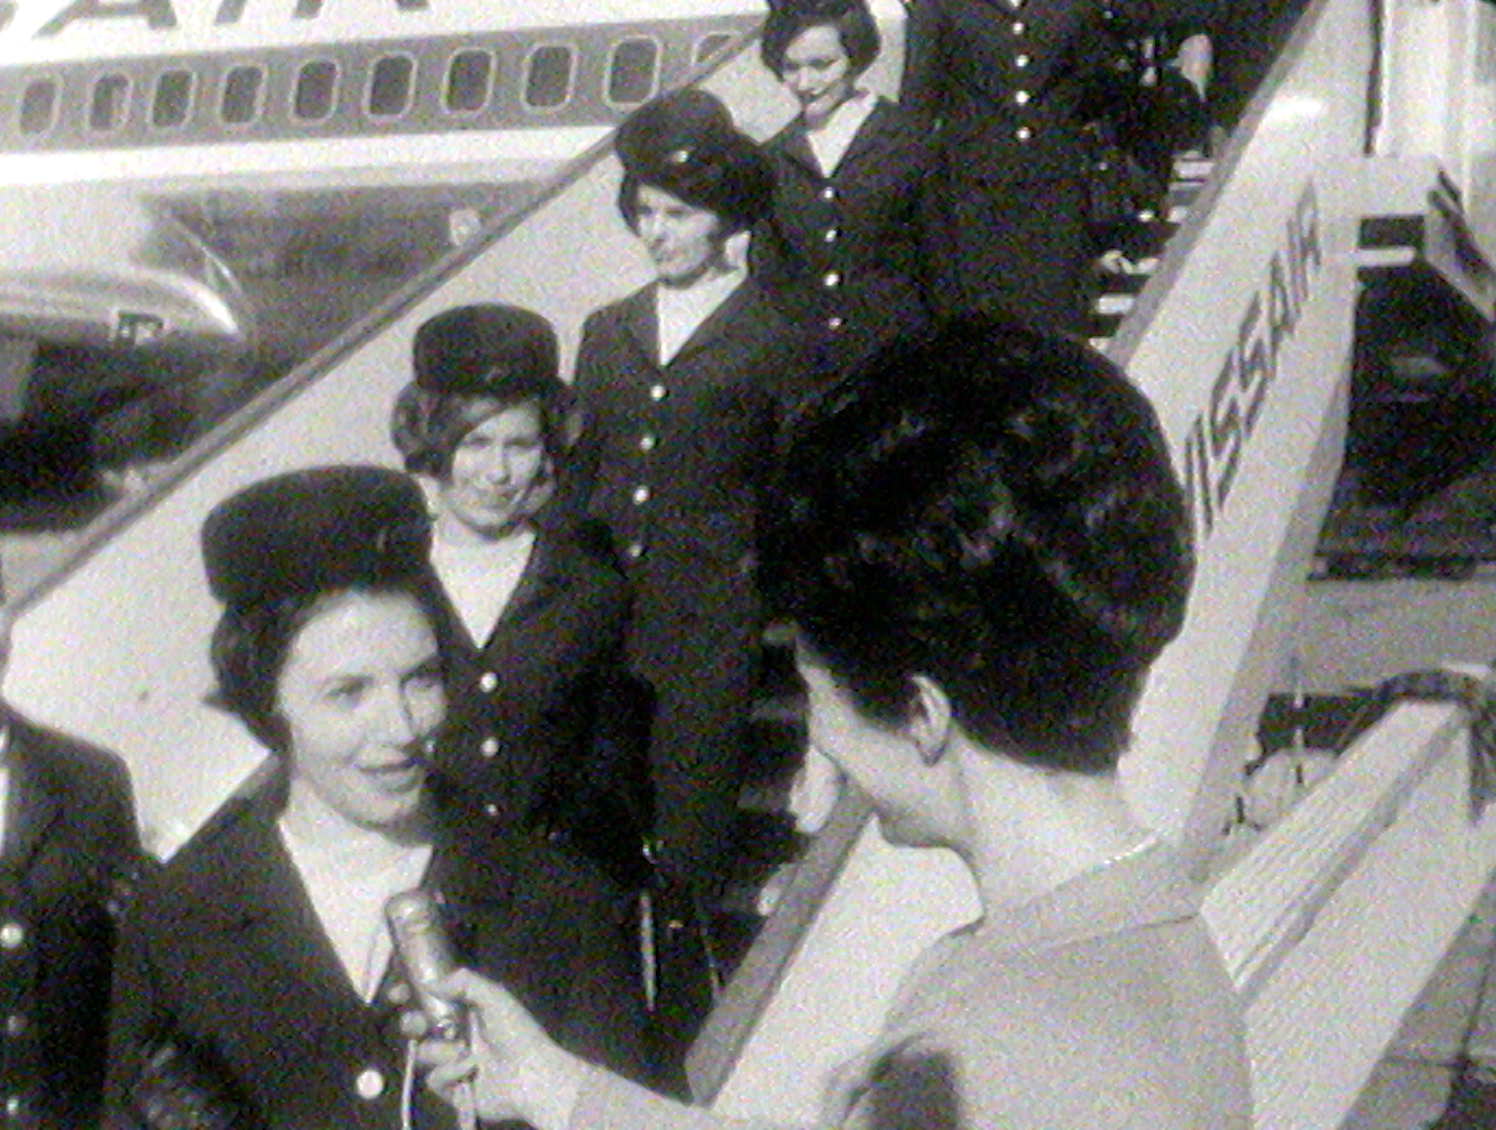 La mode Swissair